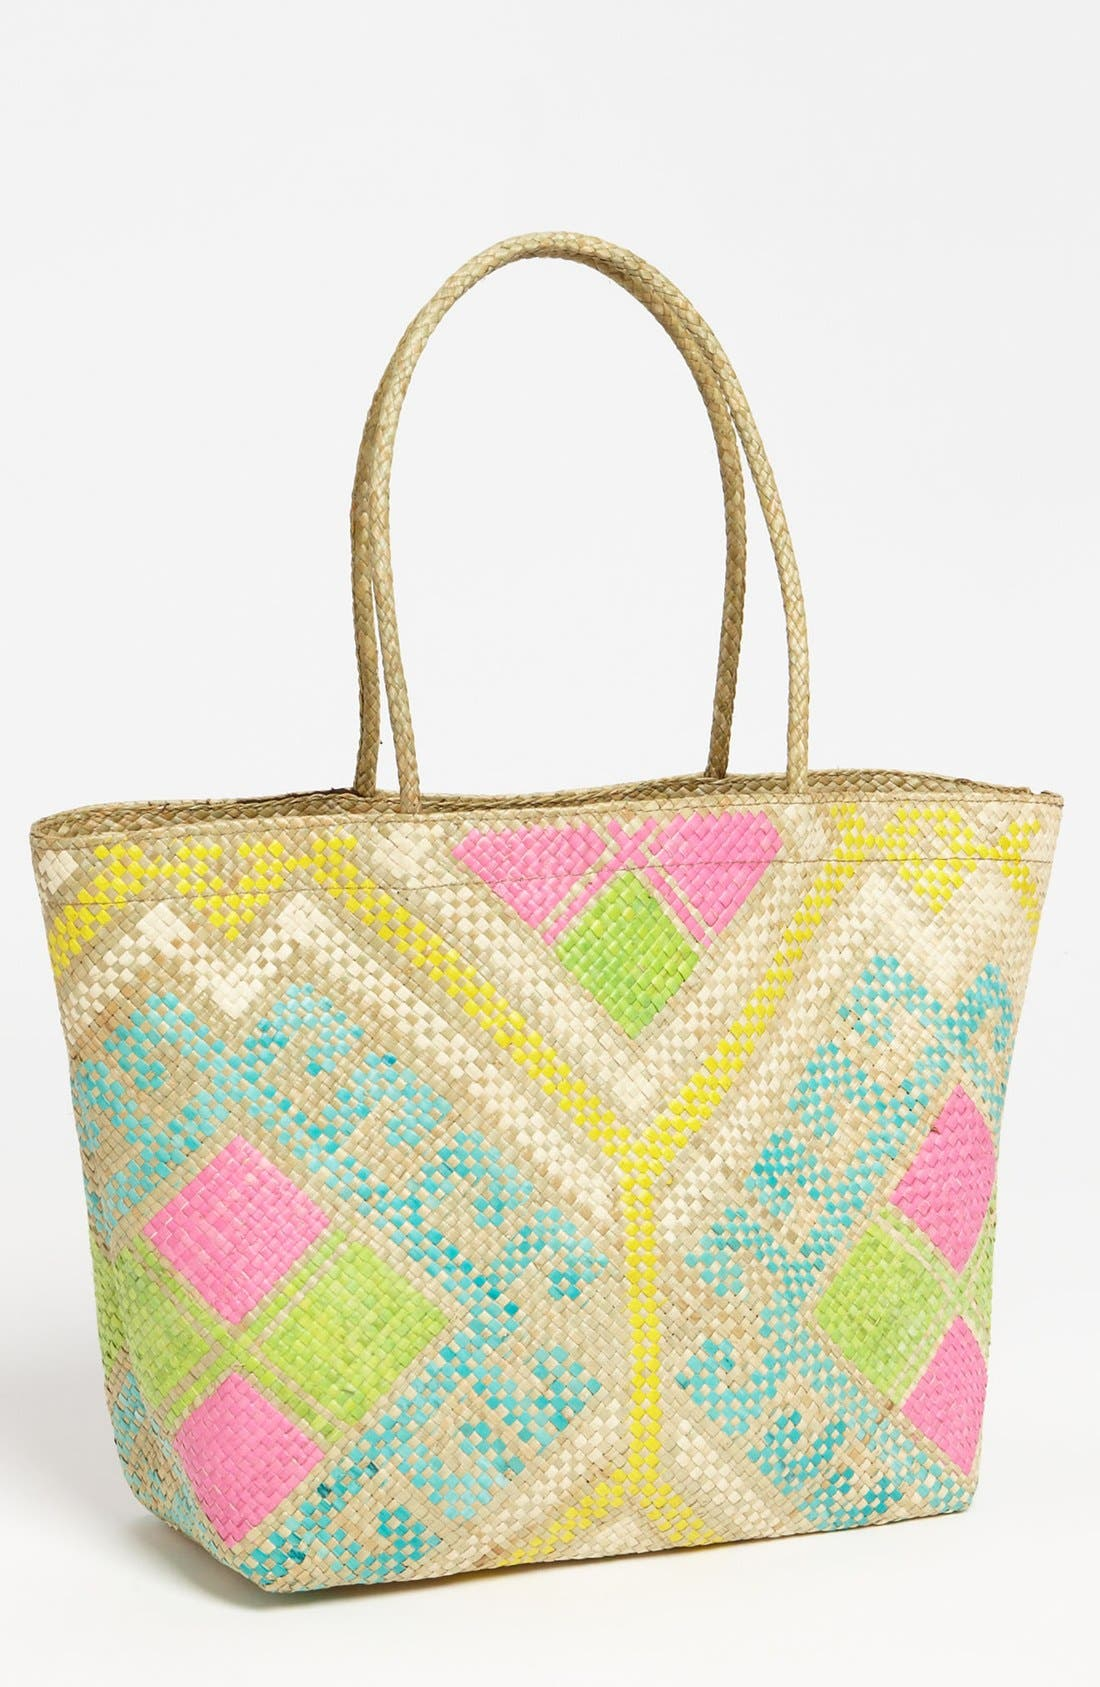 Main Image - BANAGO 'Small' Beach Tote